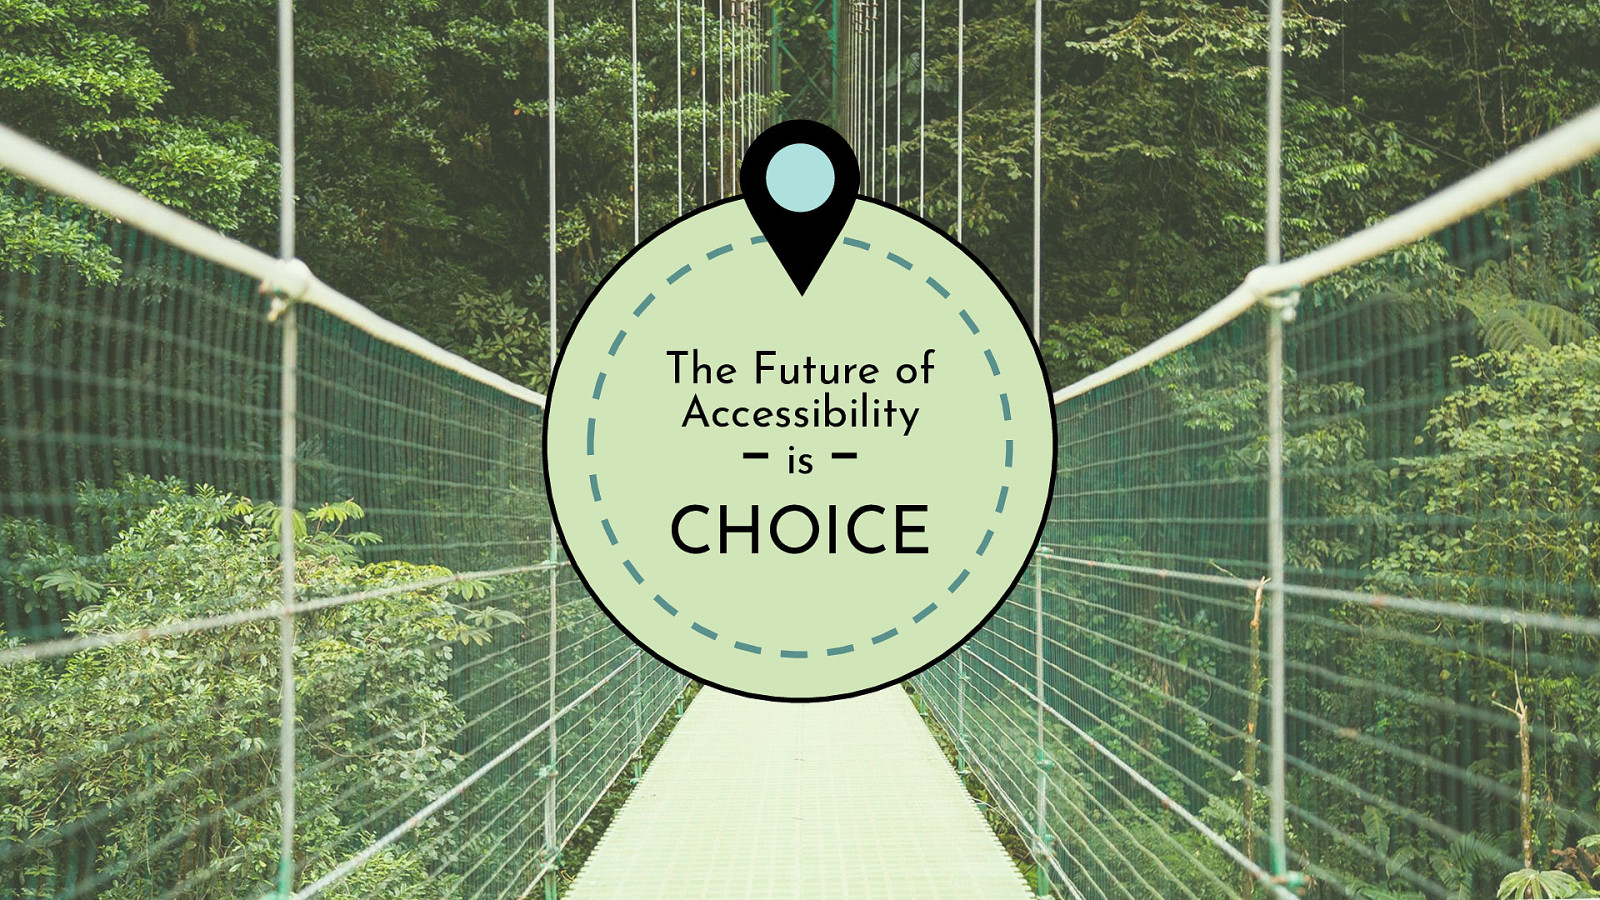 The Future of Accessibility is CHOICE